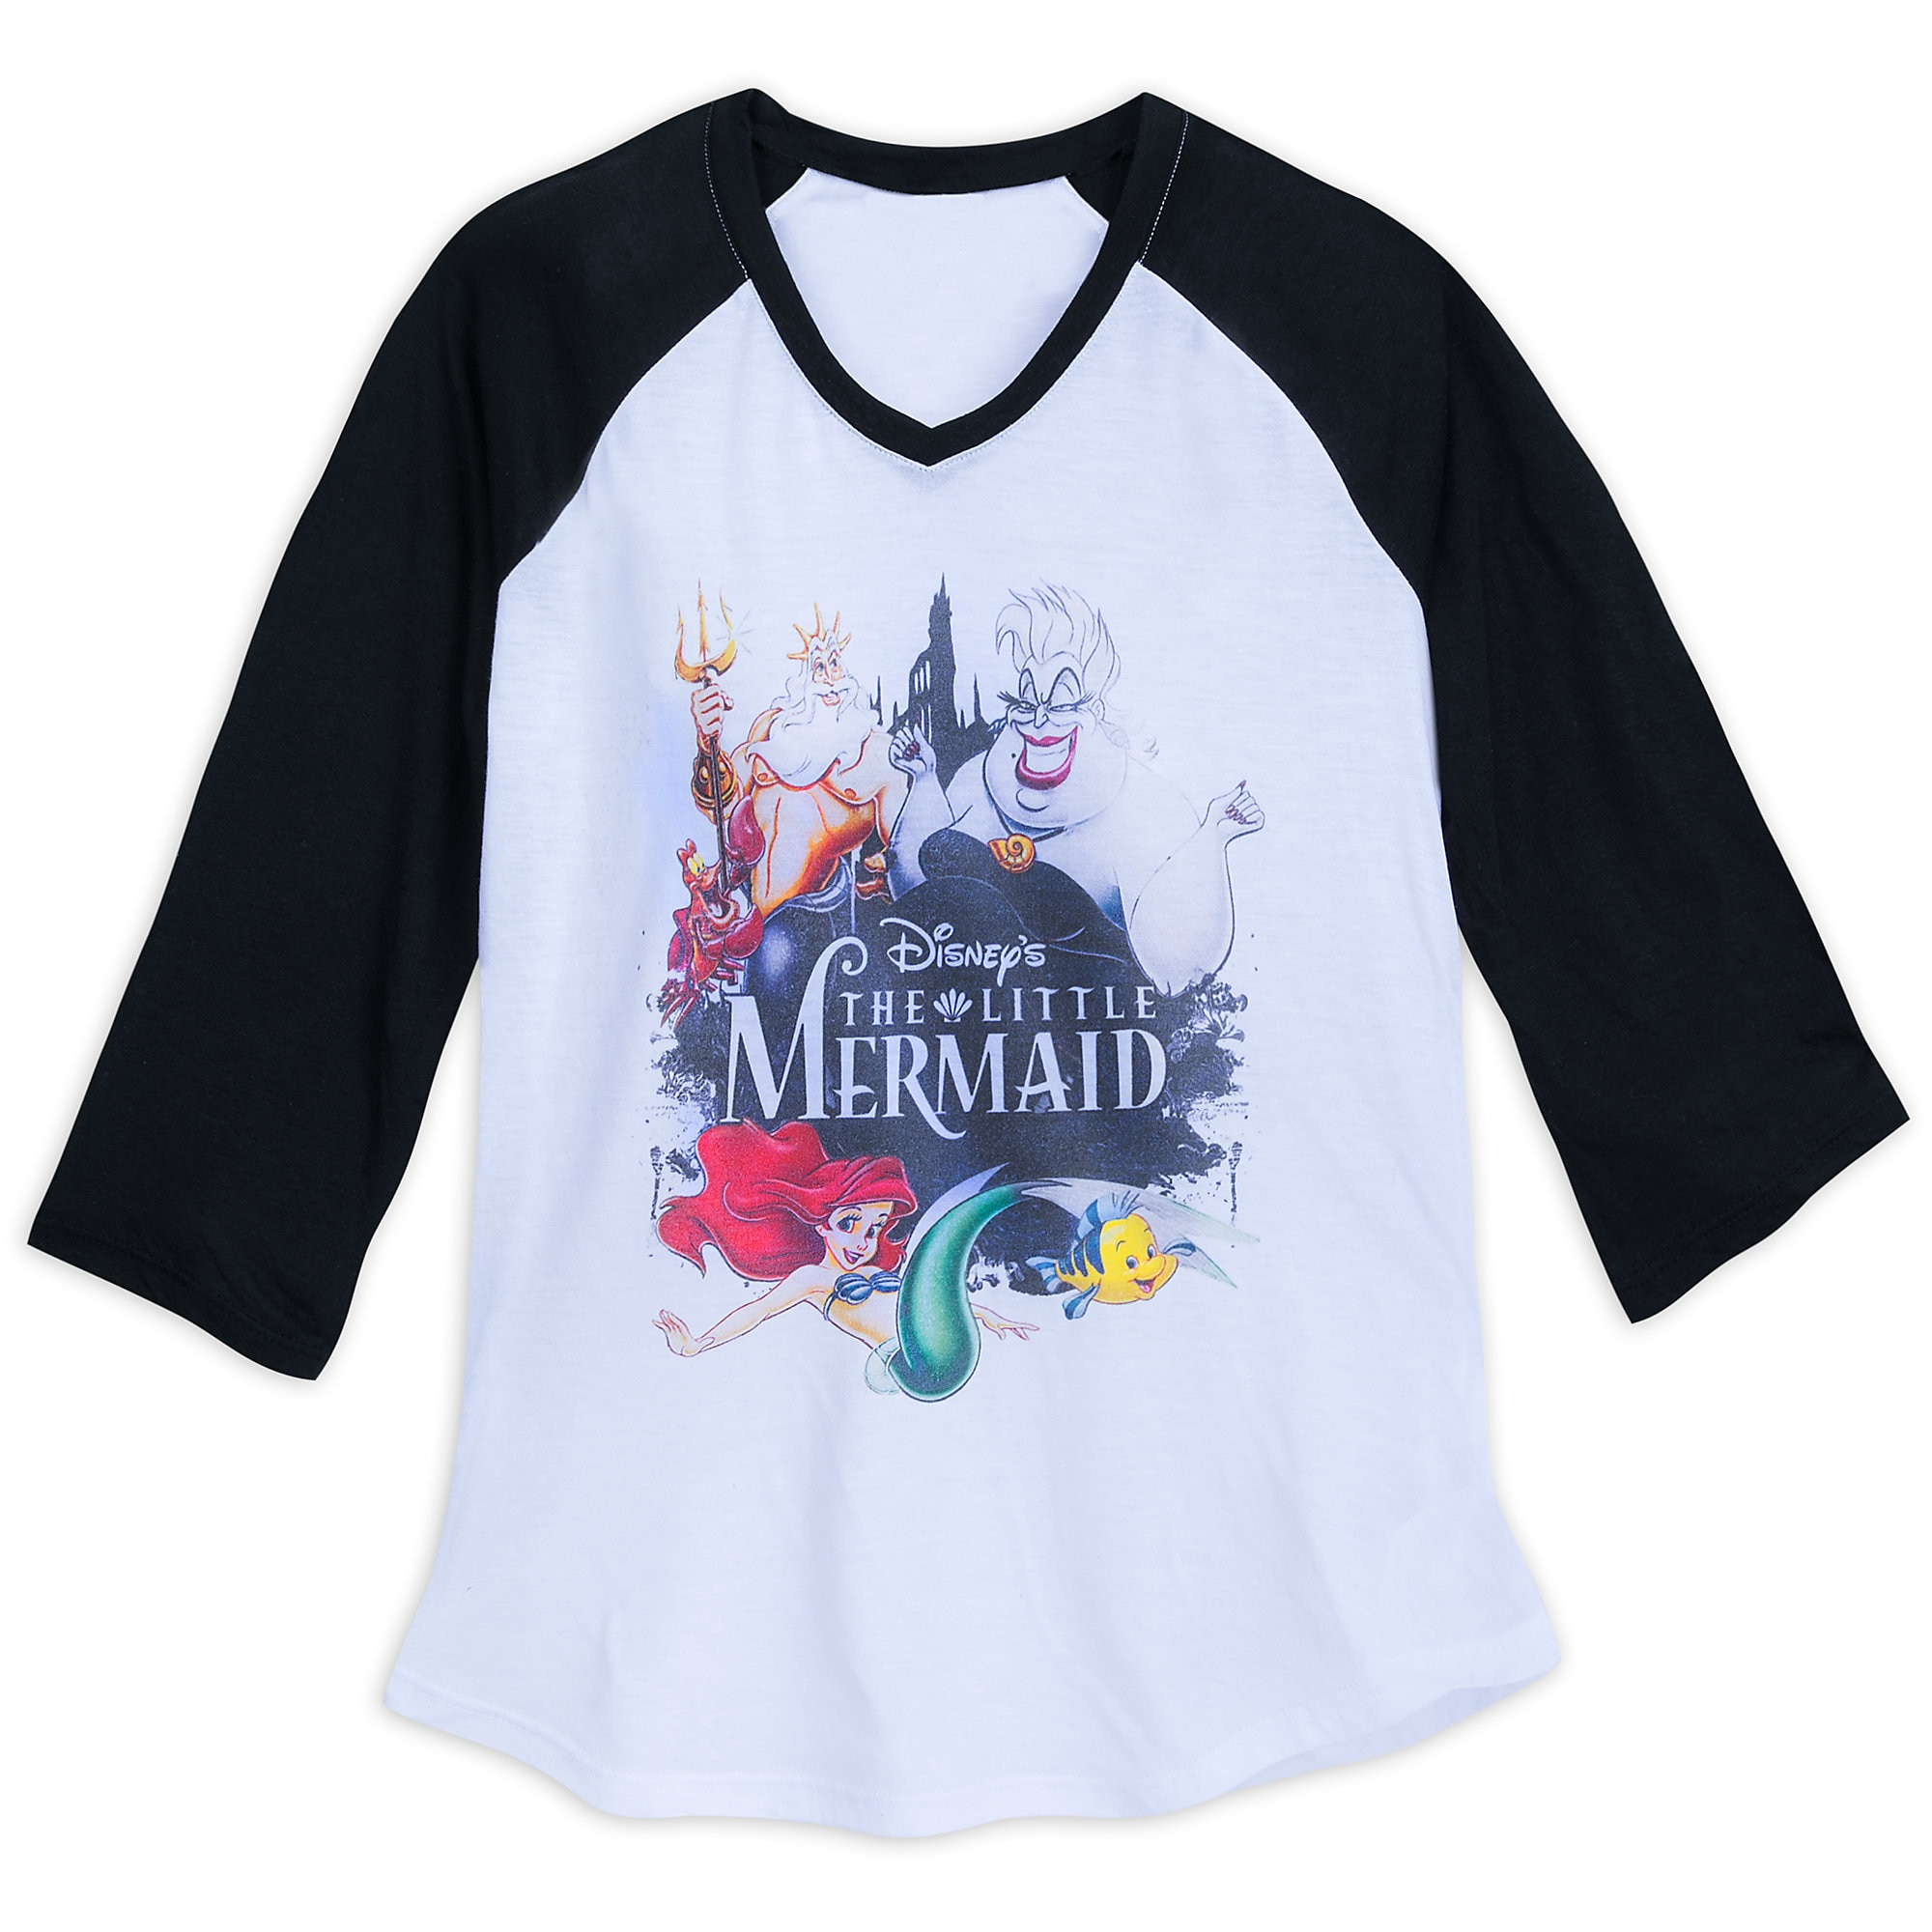 The Little Mermaid Raglan T-Shirt for Women